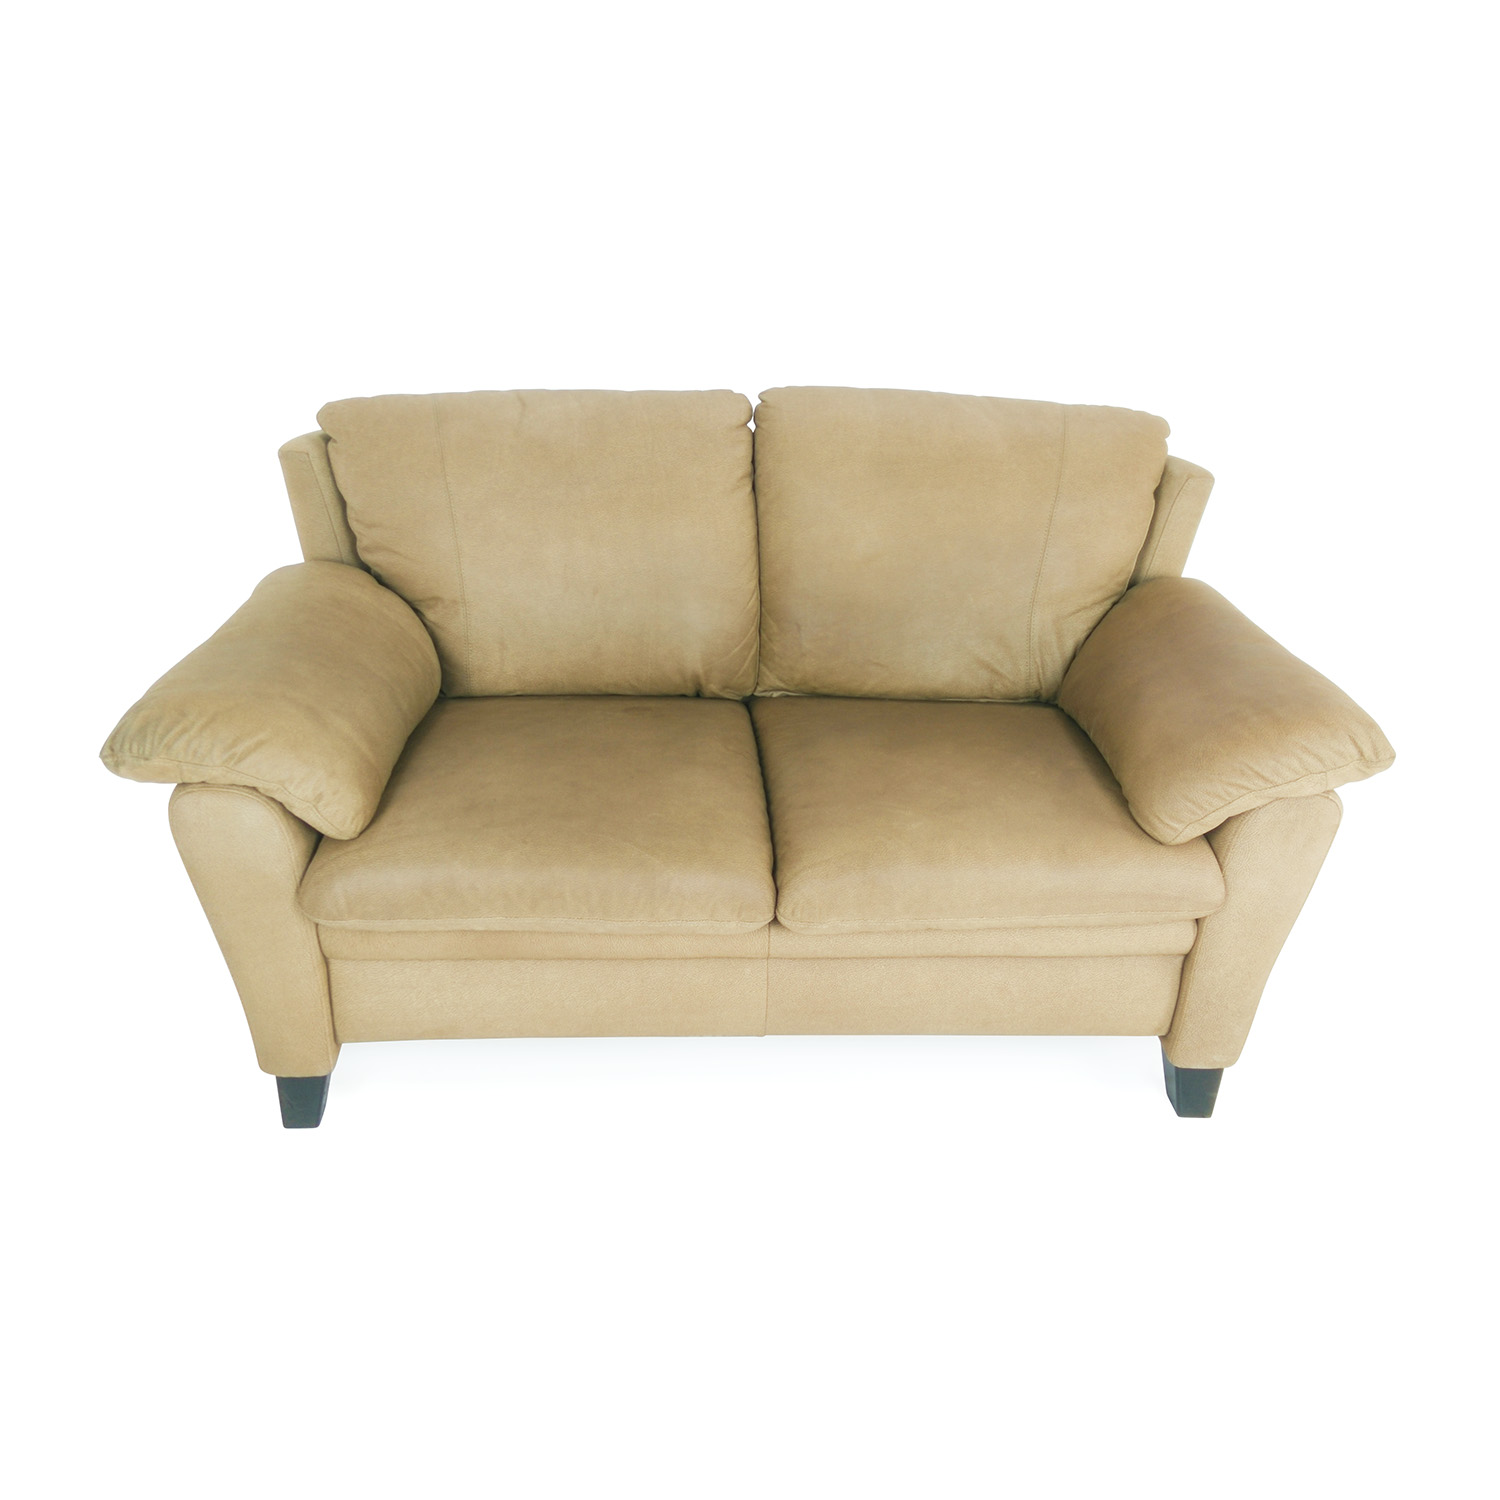 products day gold loveseat pin roche on loveseats white sale absolom